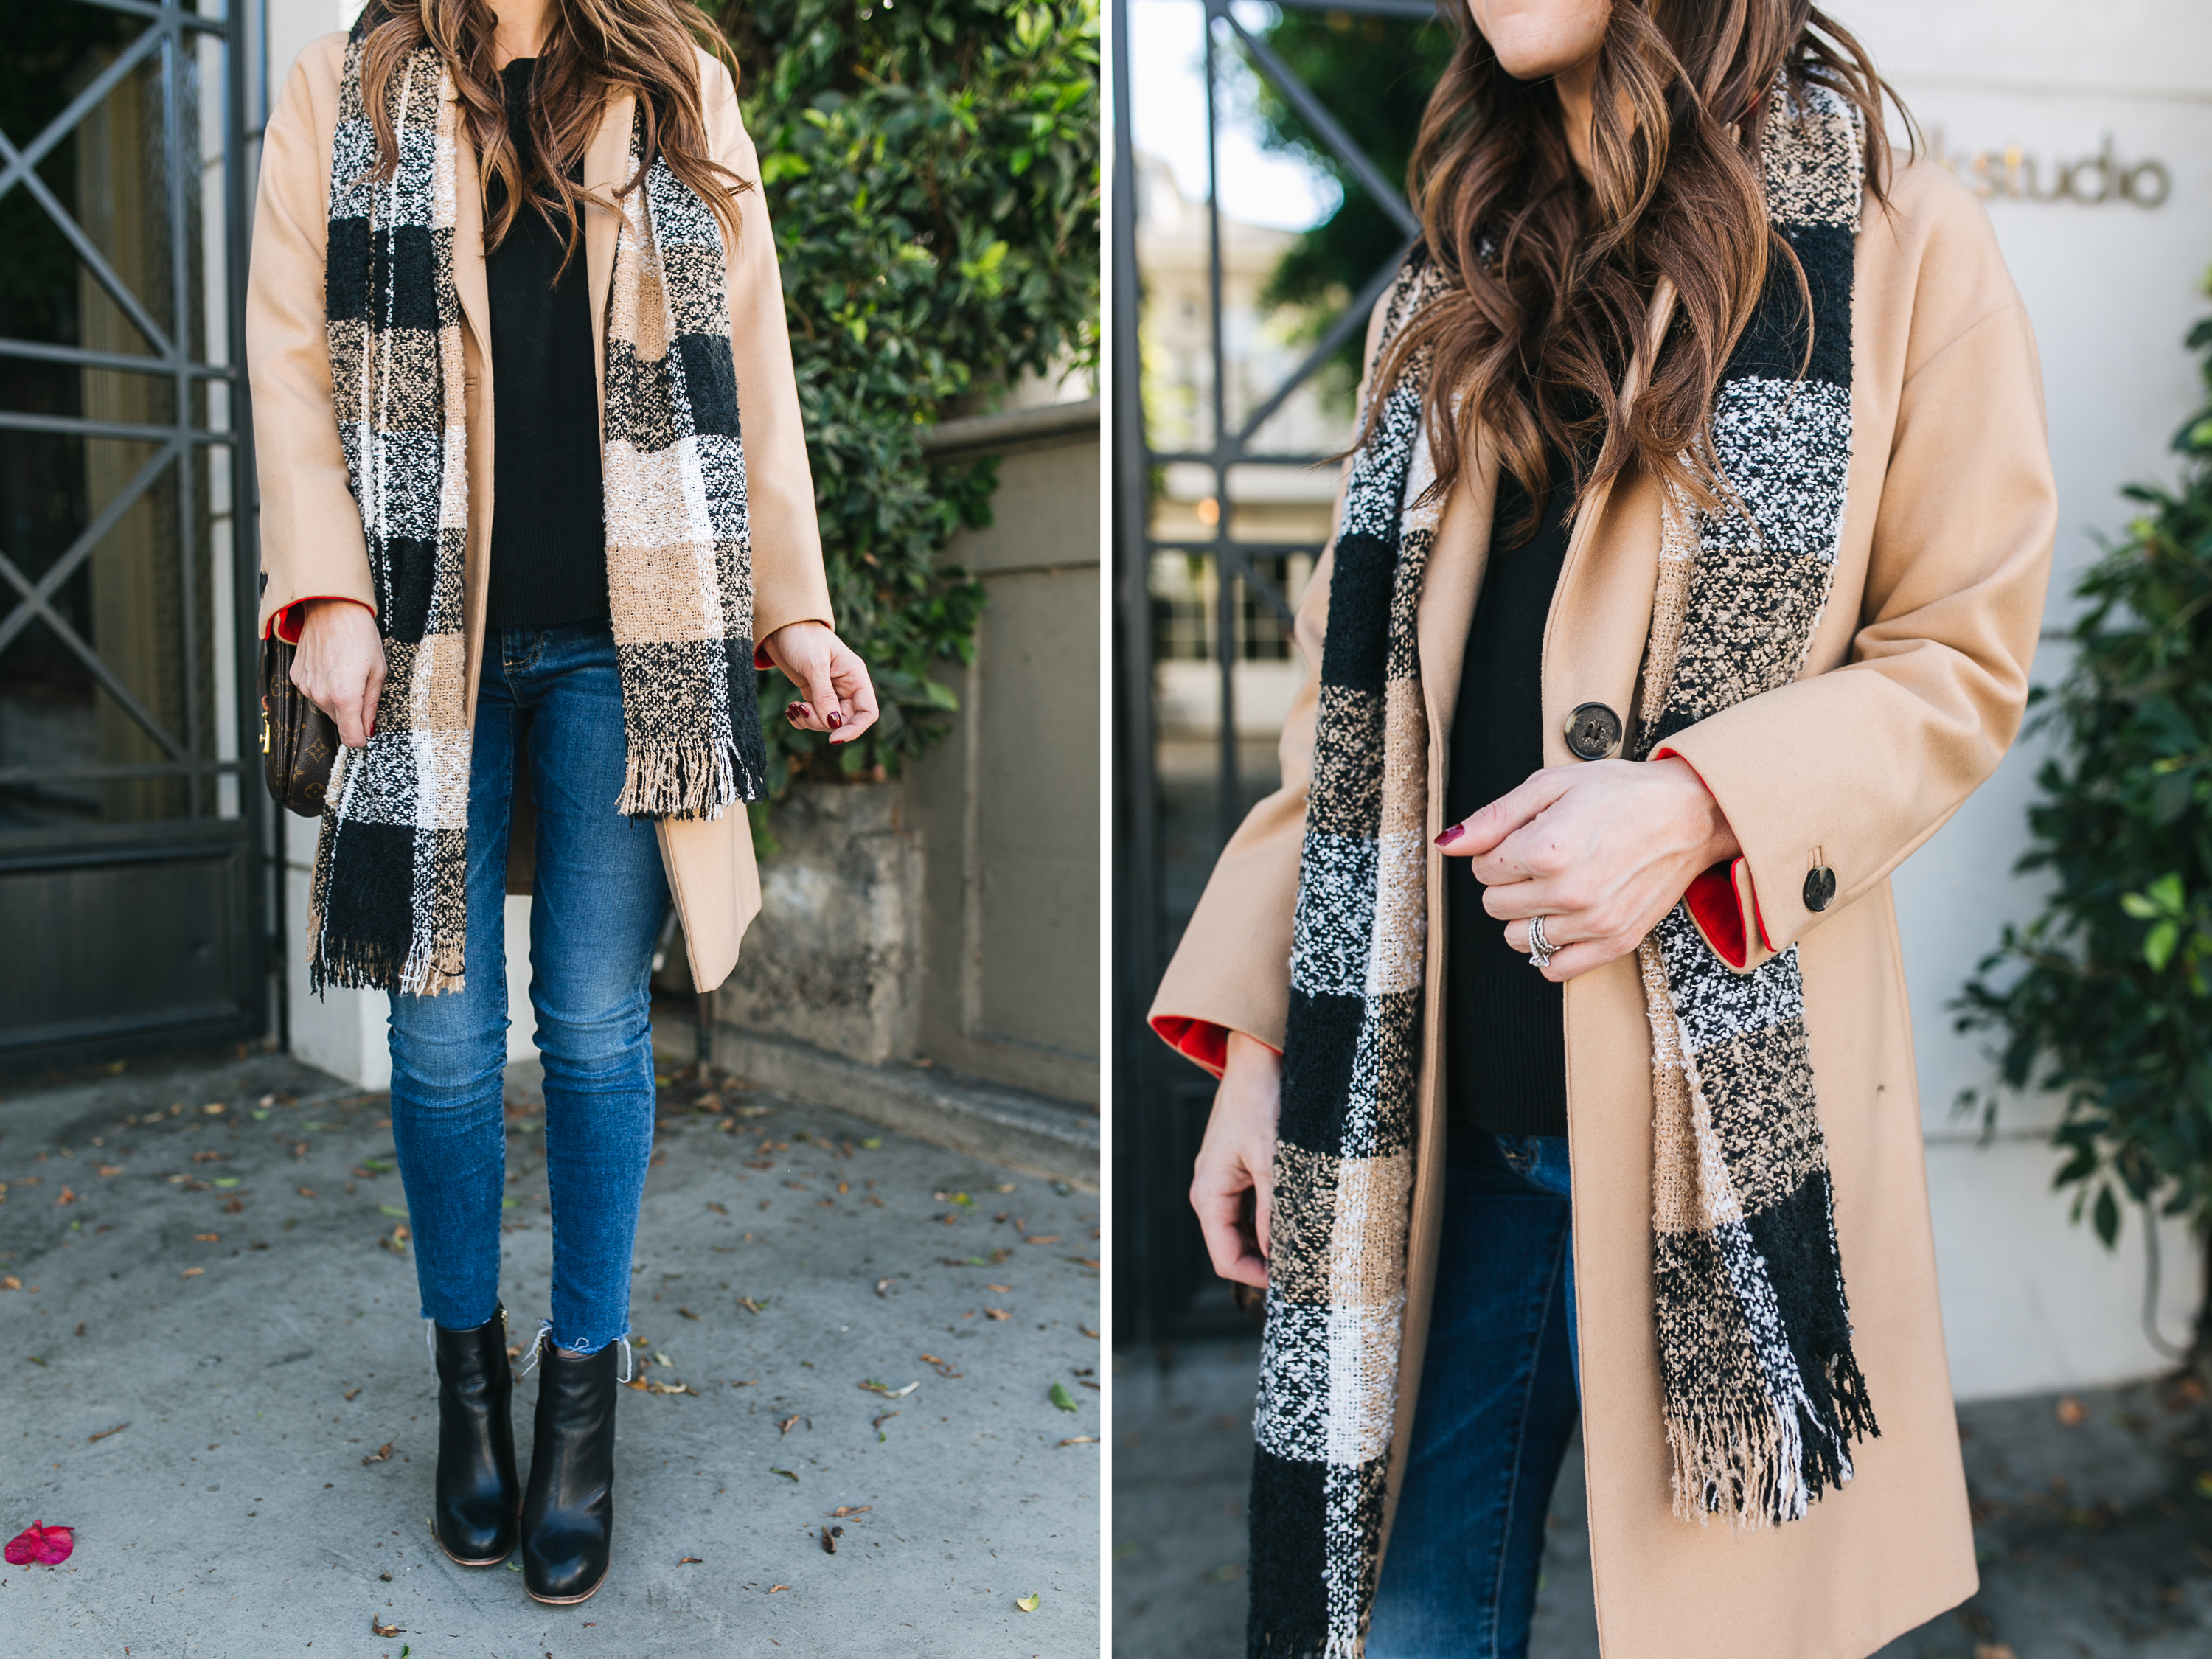 Style blogger Daryl-Ann Denner rounds up top 10 coats under $200 and styles a camel trench coat with black booties